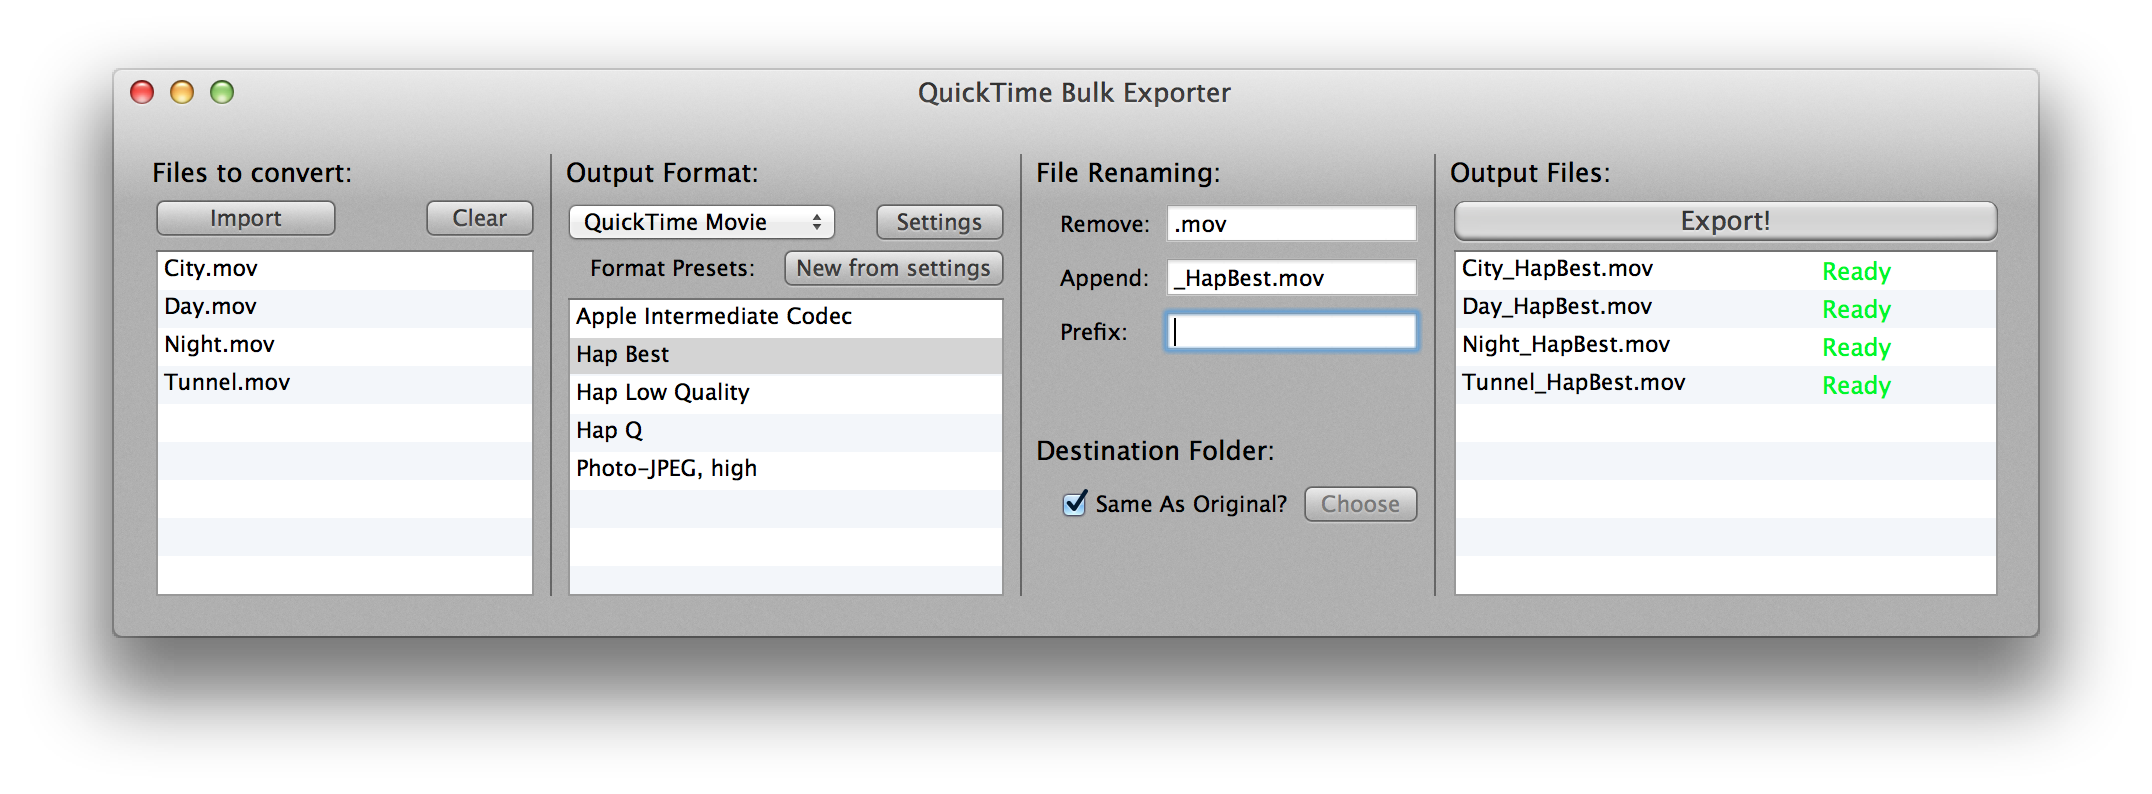 The free VVBatchExporter can be used to automate the conversion of movies into Hap and other Quicktime codecs.